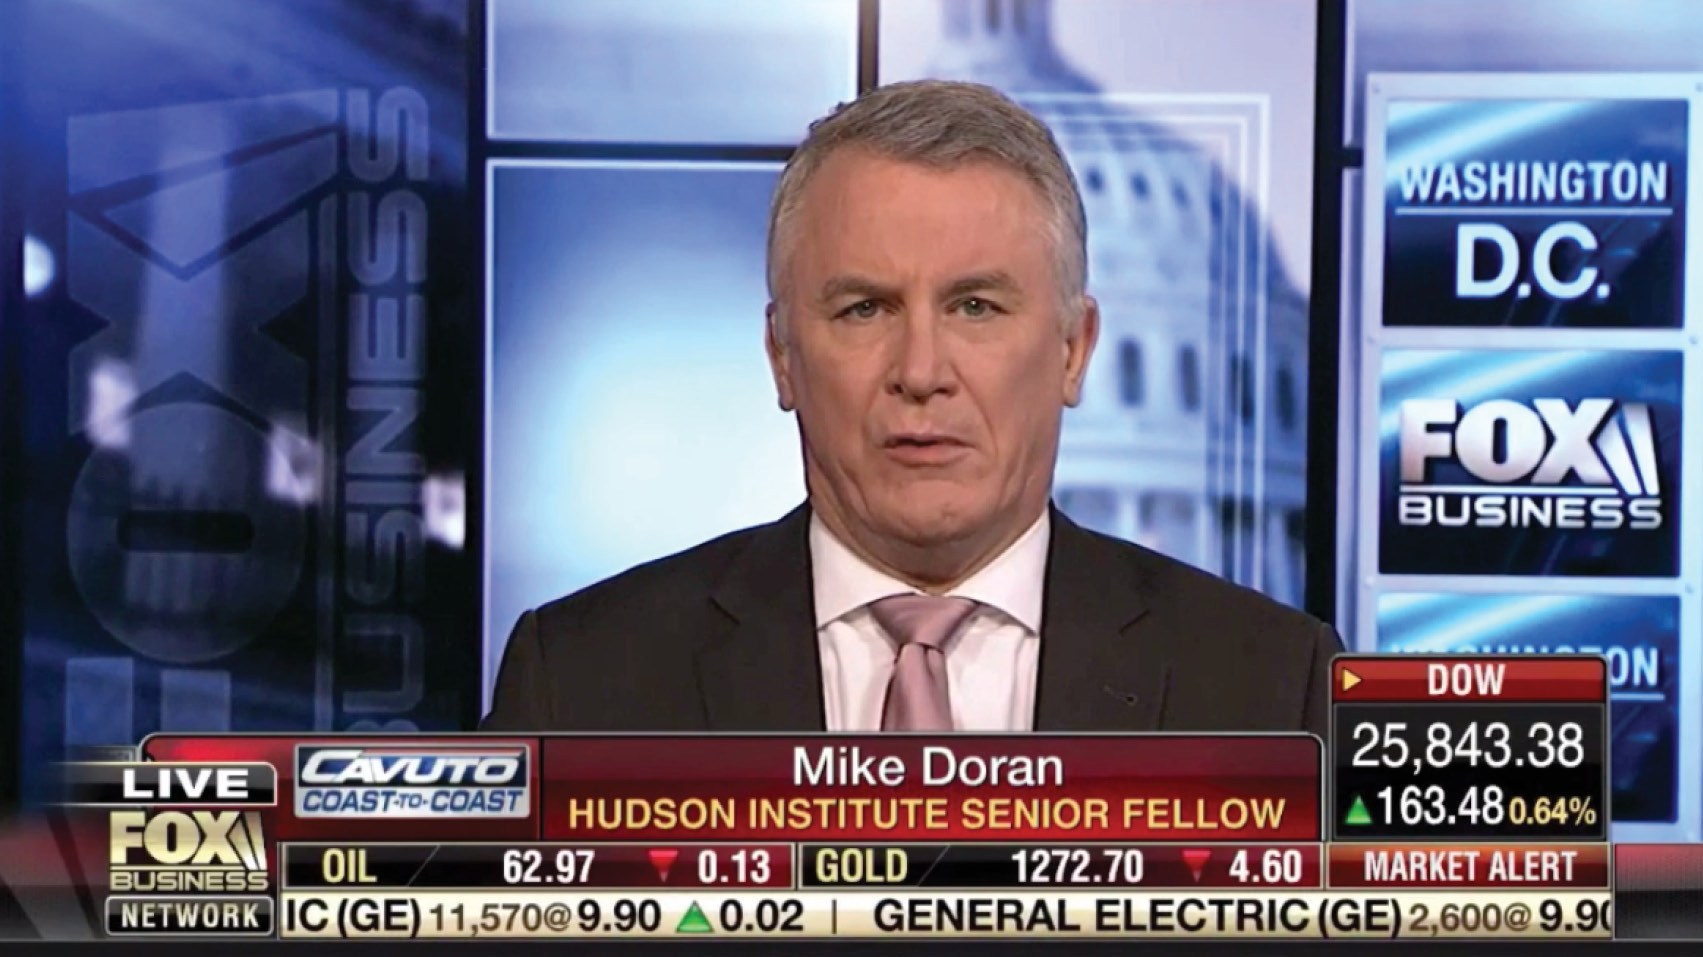 Michael Doran discussed the escalating tensions with Iran and what a U.S. contingency plan might look like.